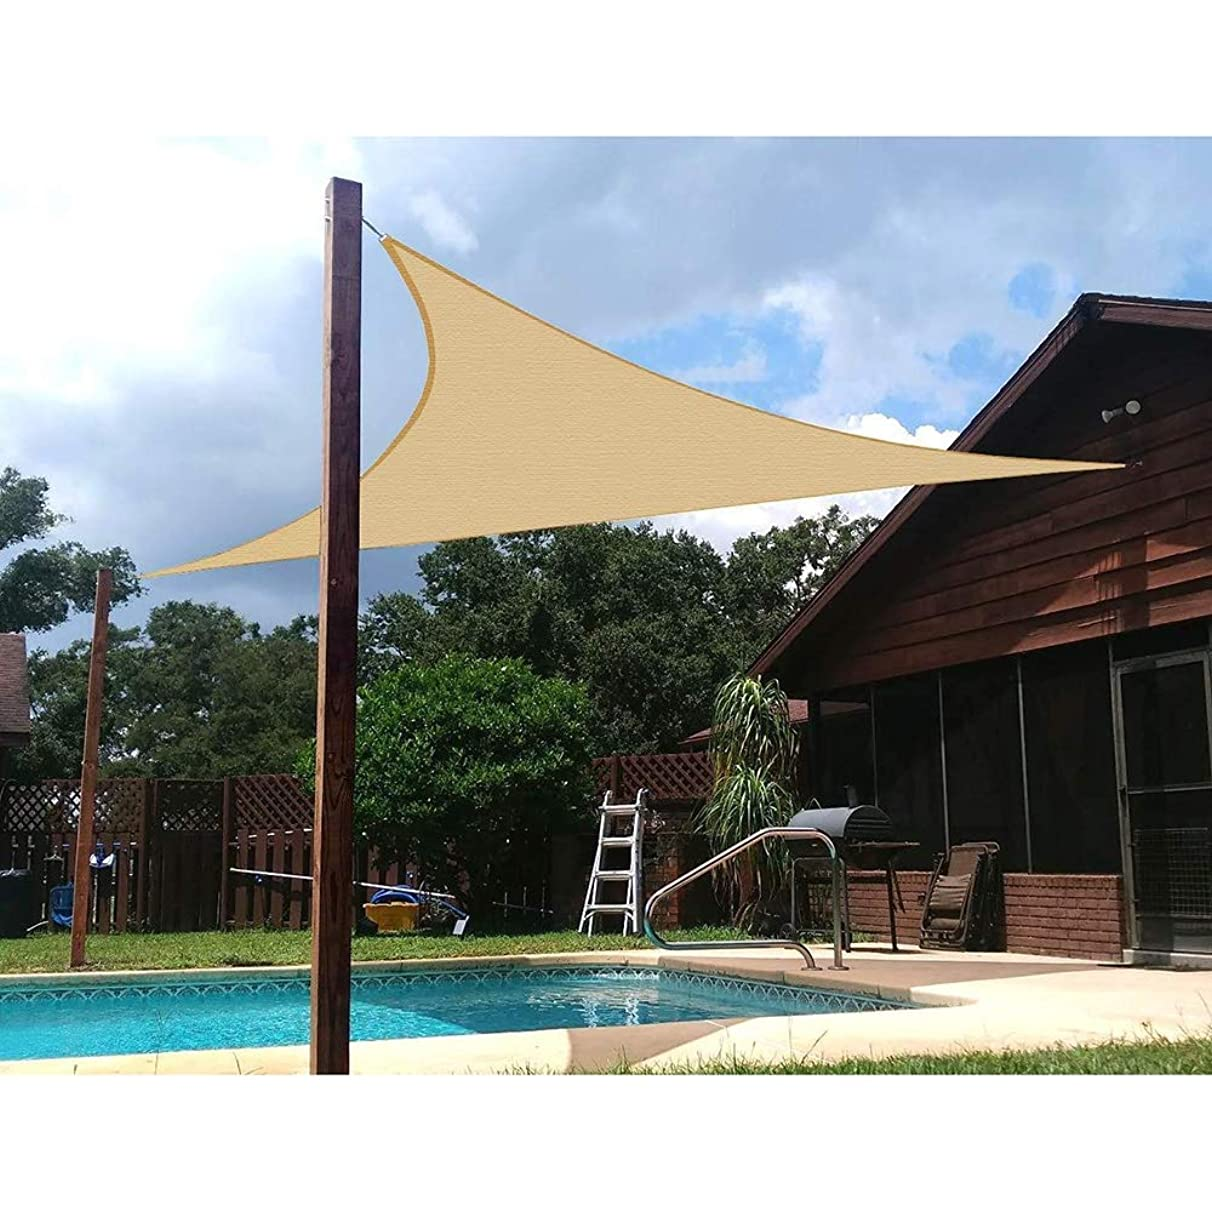 Awnings 4.5'x 4.5'x4.5' Garden Shade Sail Waterproof and Mildew 95% Uv Protection Triangle for Garden Pool Terrace Custom Size yma051668